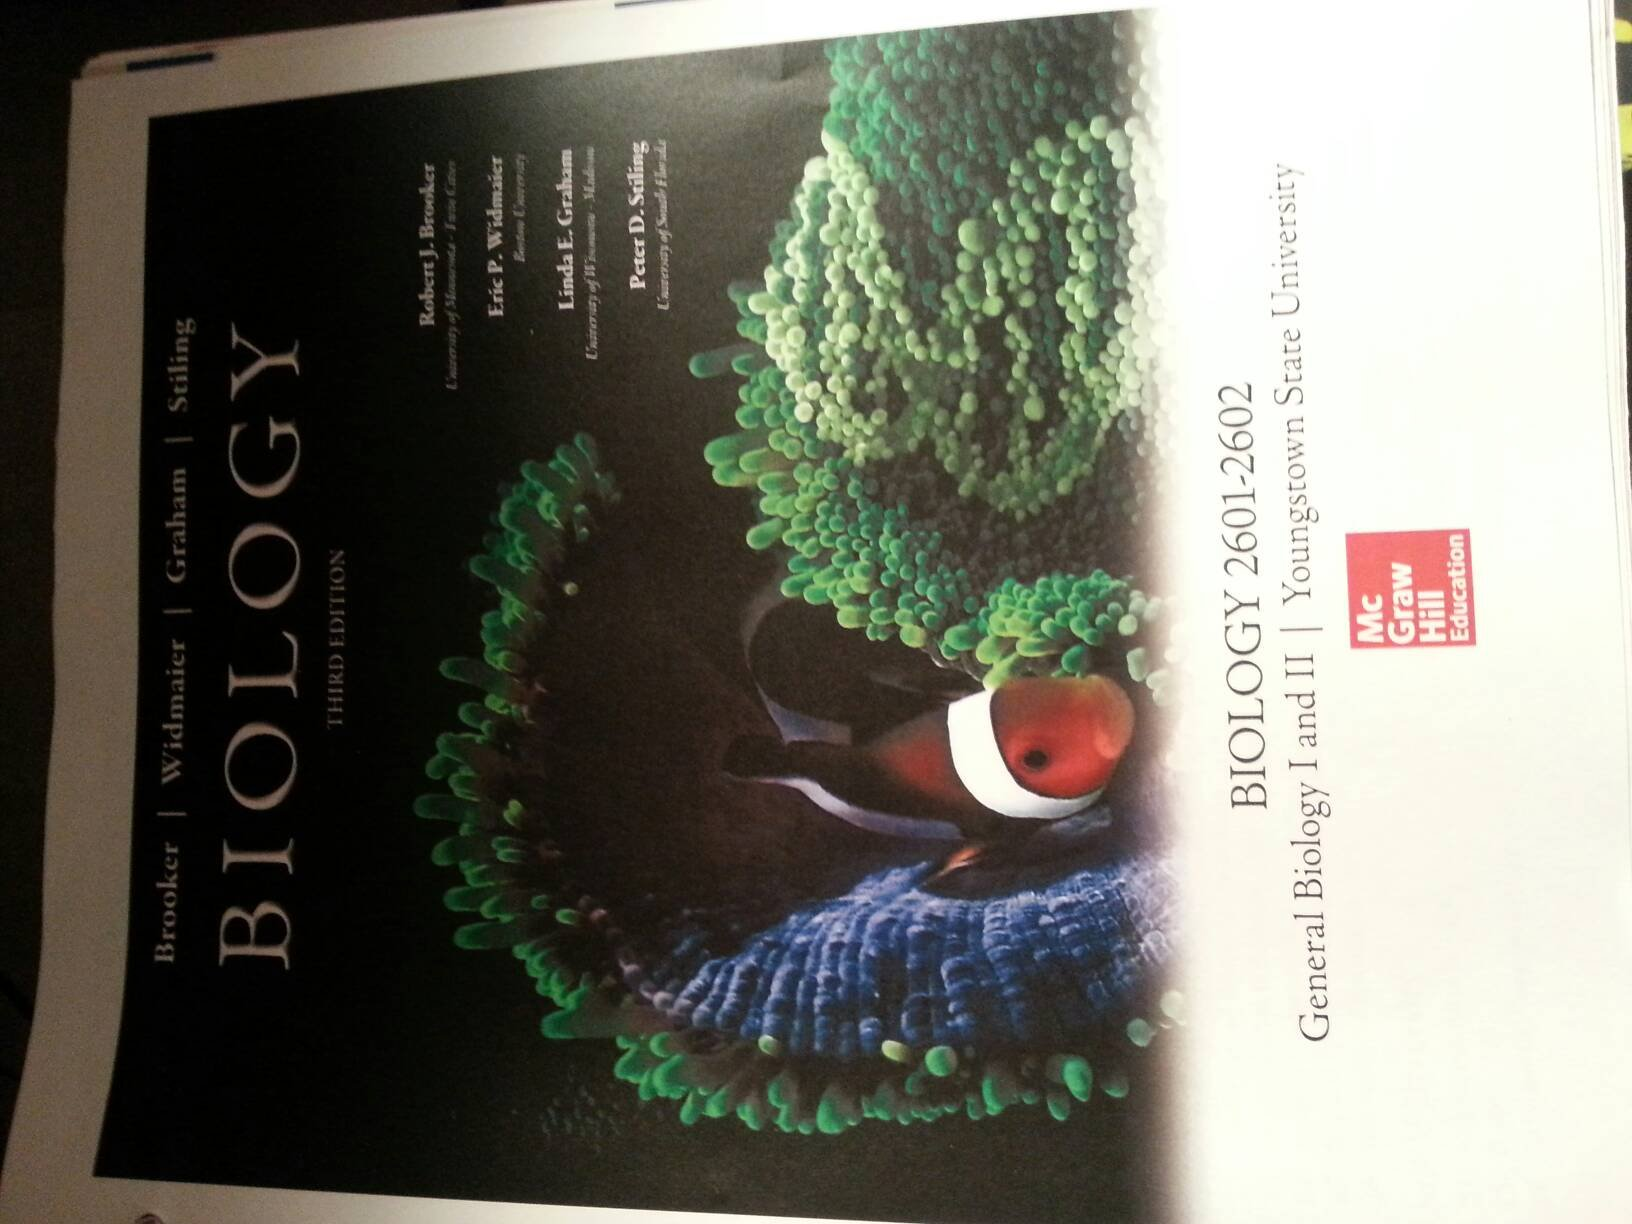 Biology third edition brooker widmaier graham stiling et al biology third edition brooker widmaier graham stiling et al et al brooker 9780078126888 amazon books fandeluxe Images